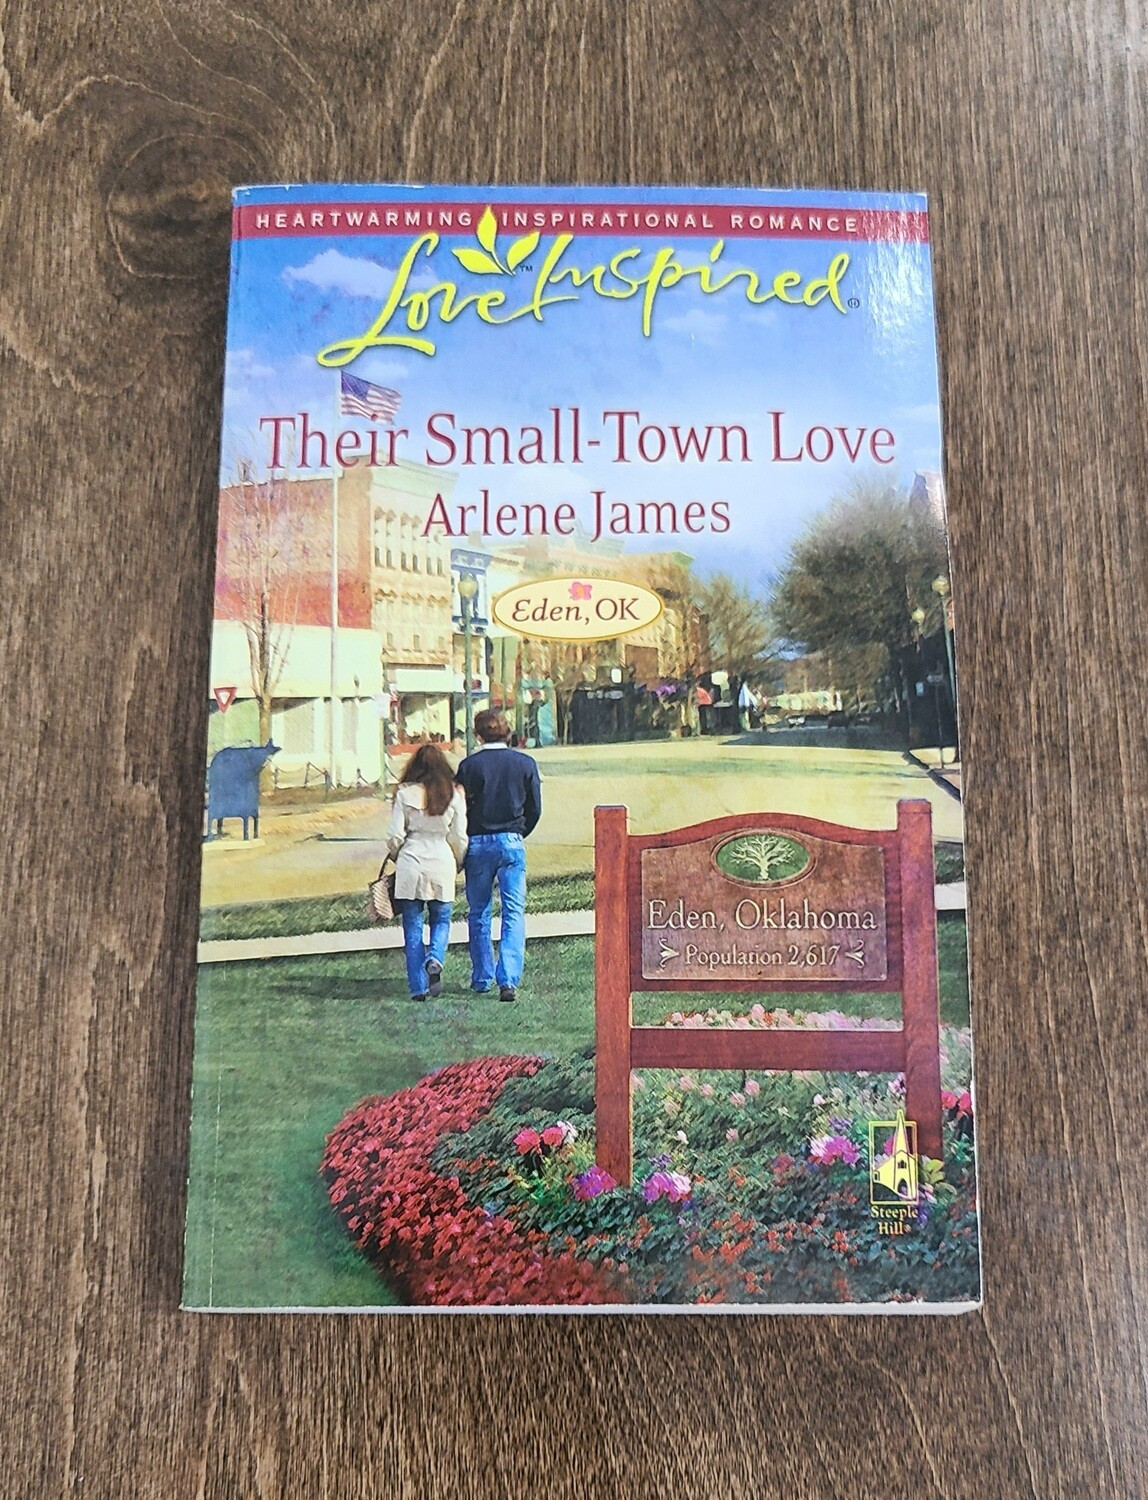 Their Small-Town Love by Arlene James